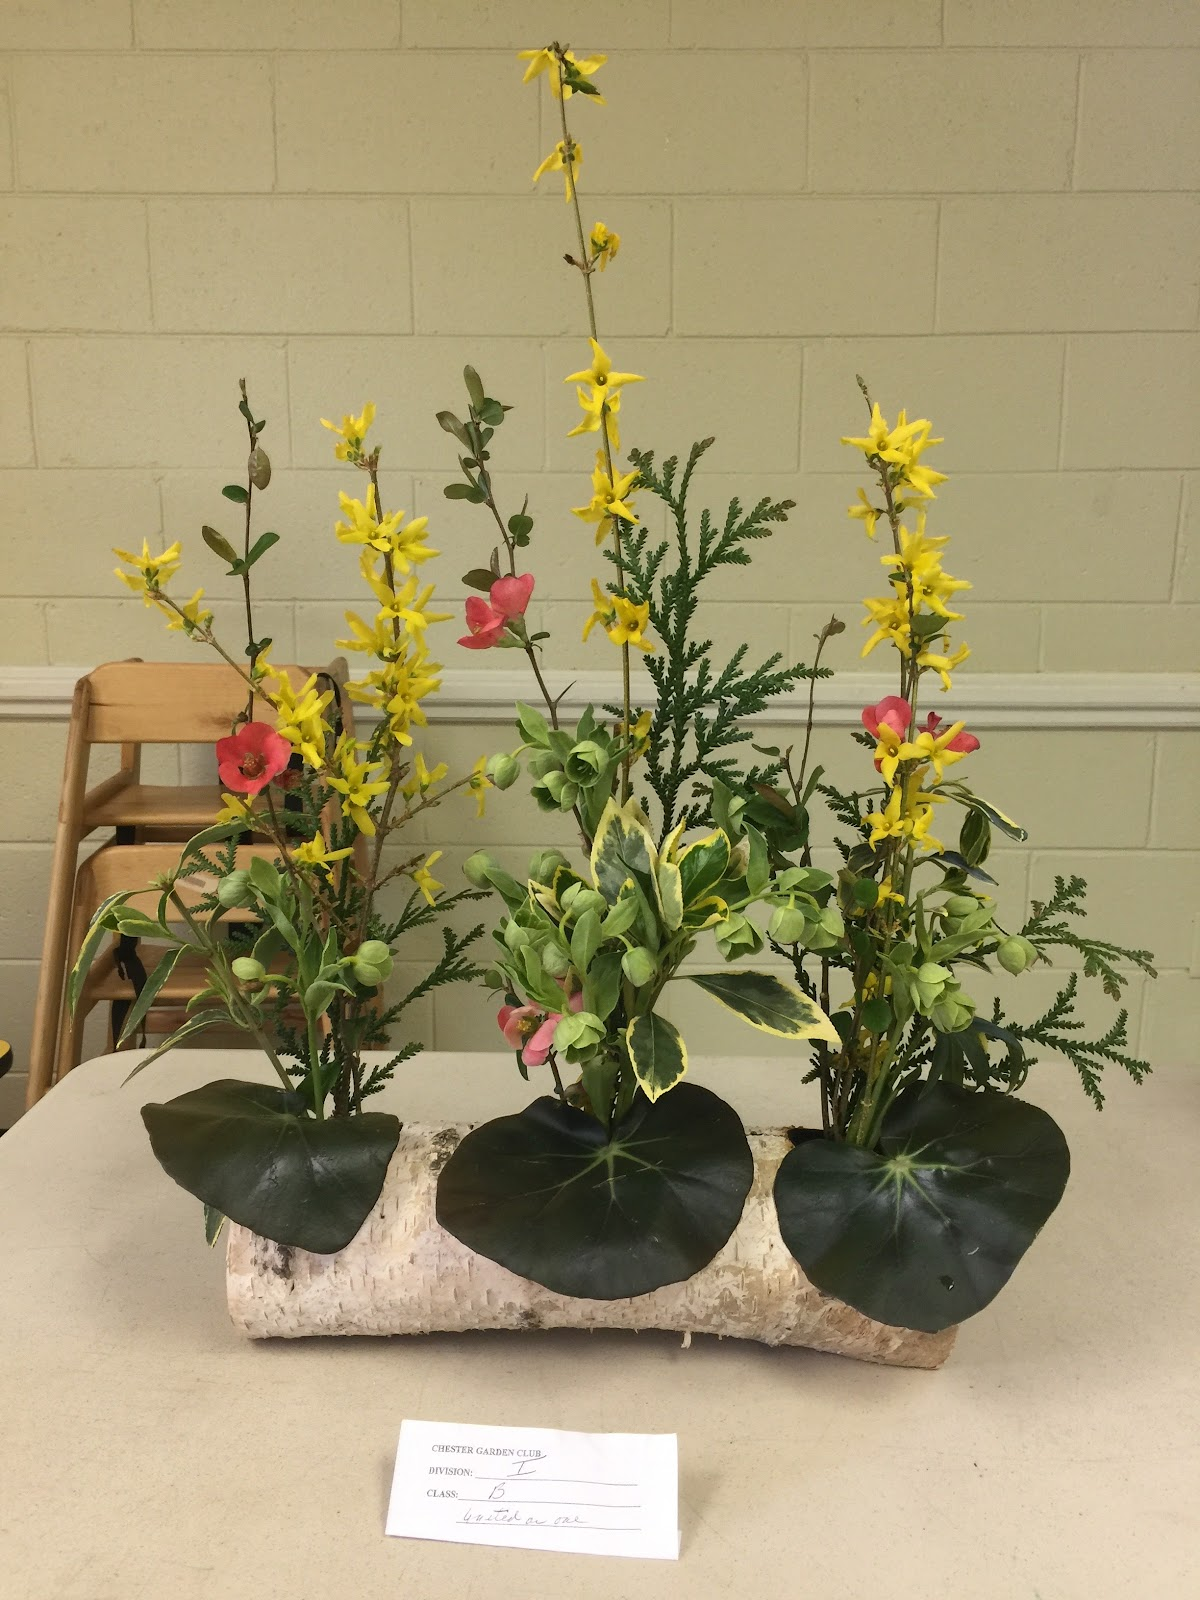 New Garden Club Journal: Stabile and Synergistic Designs on